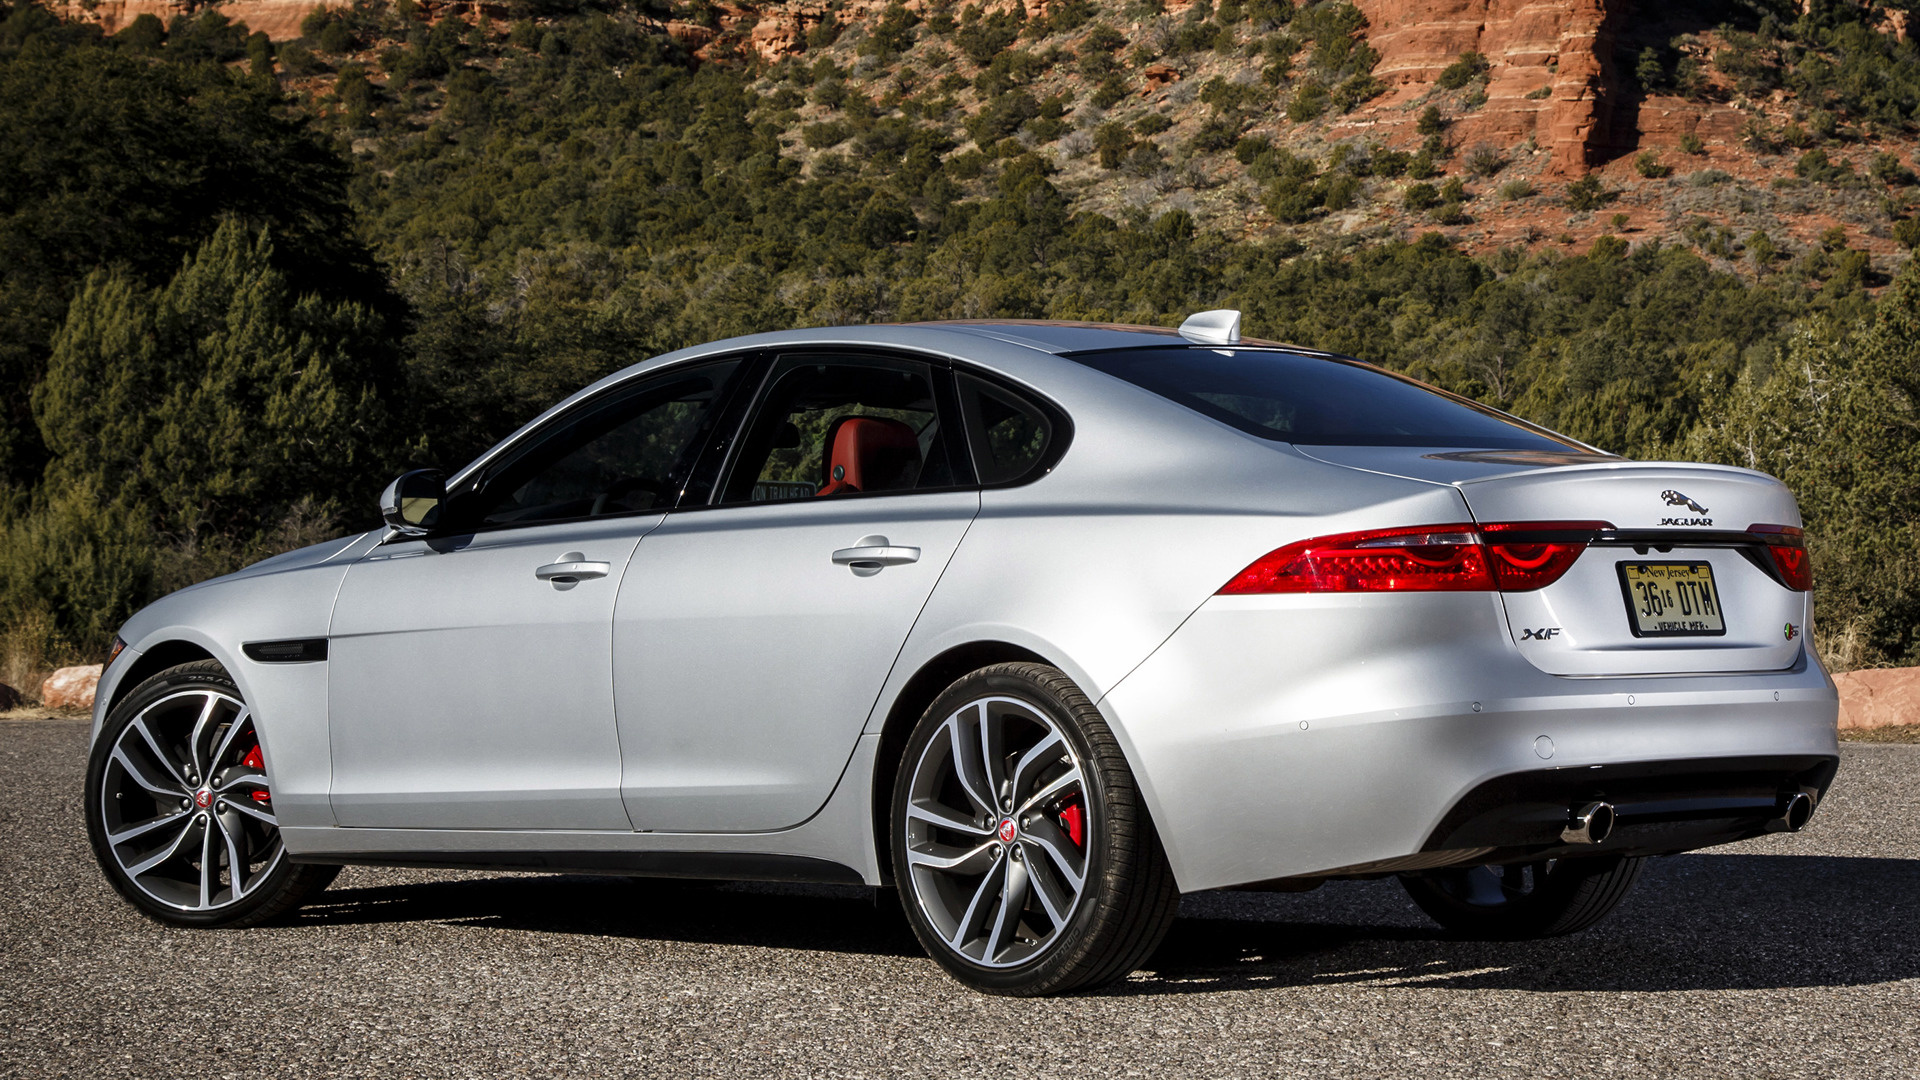 2016 Jaguar XF S US Wallpapers And HD Images Car Pixel